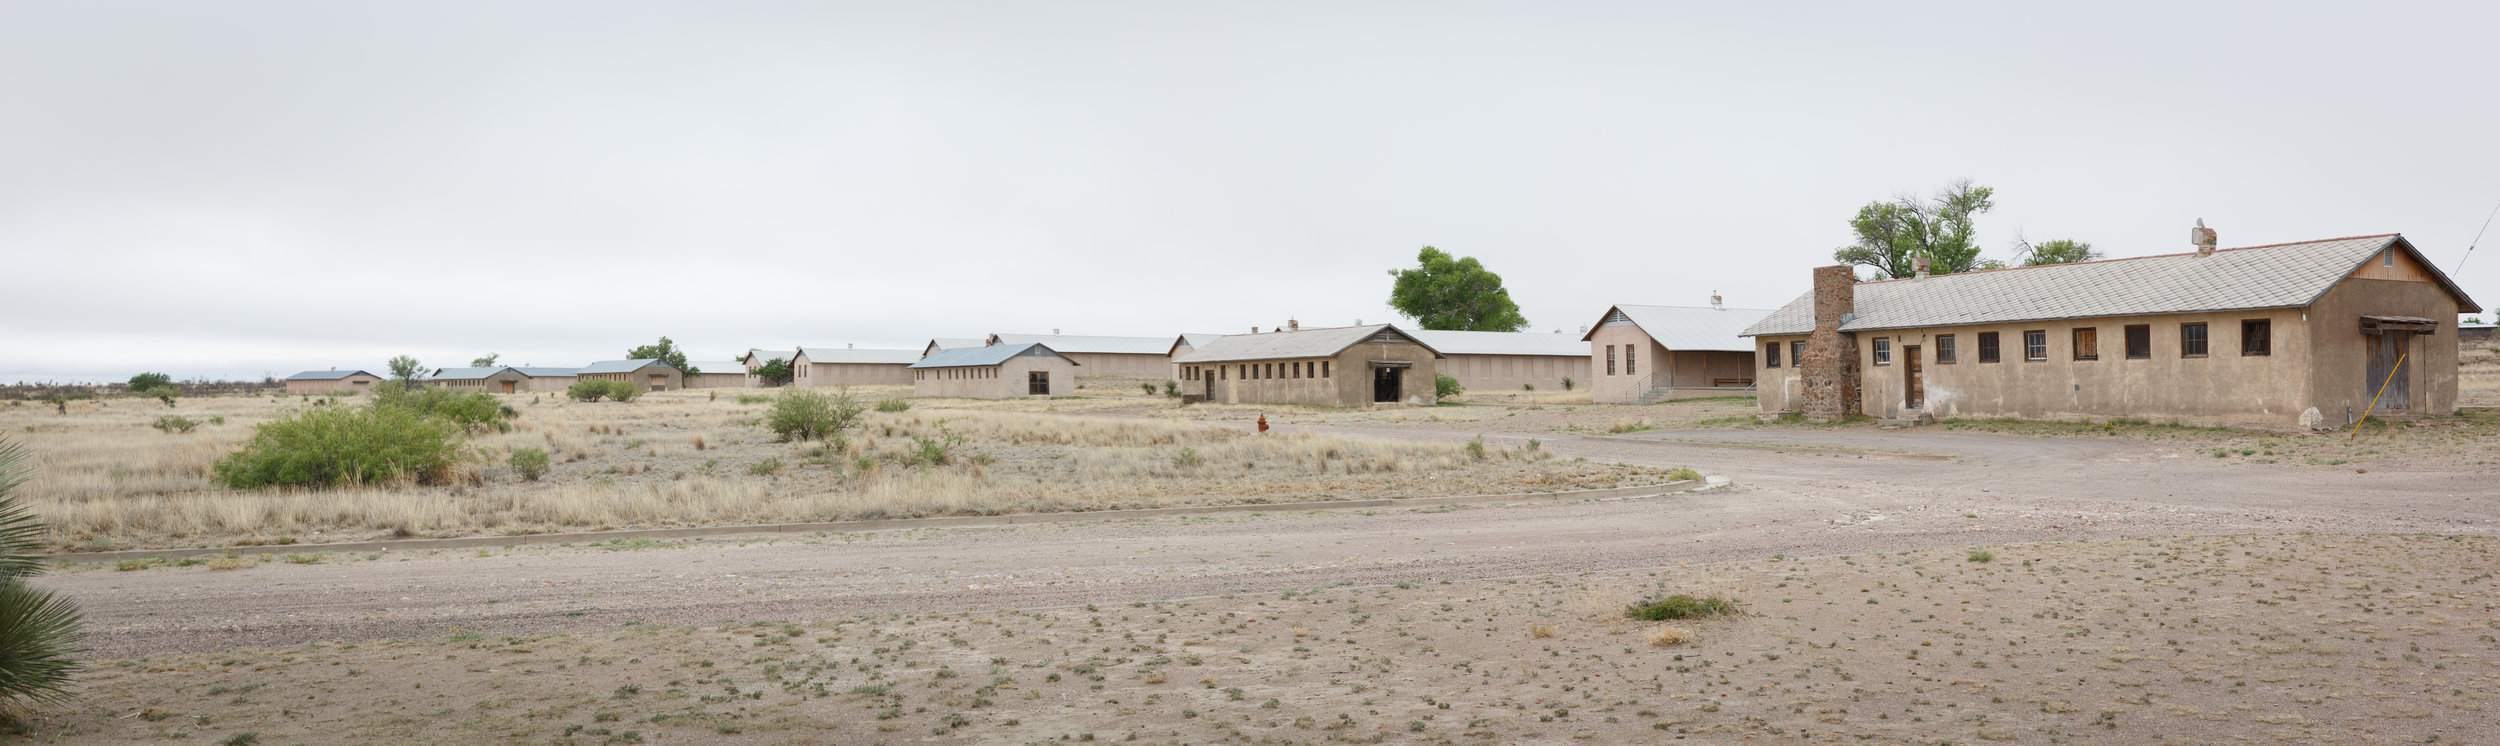 The barracks buildings of the former Fort D.A. Russell